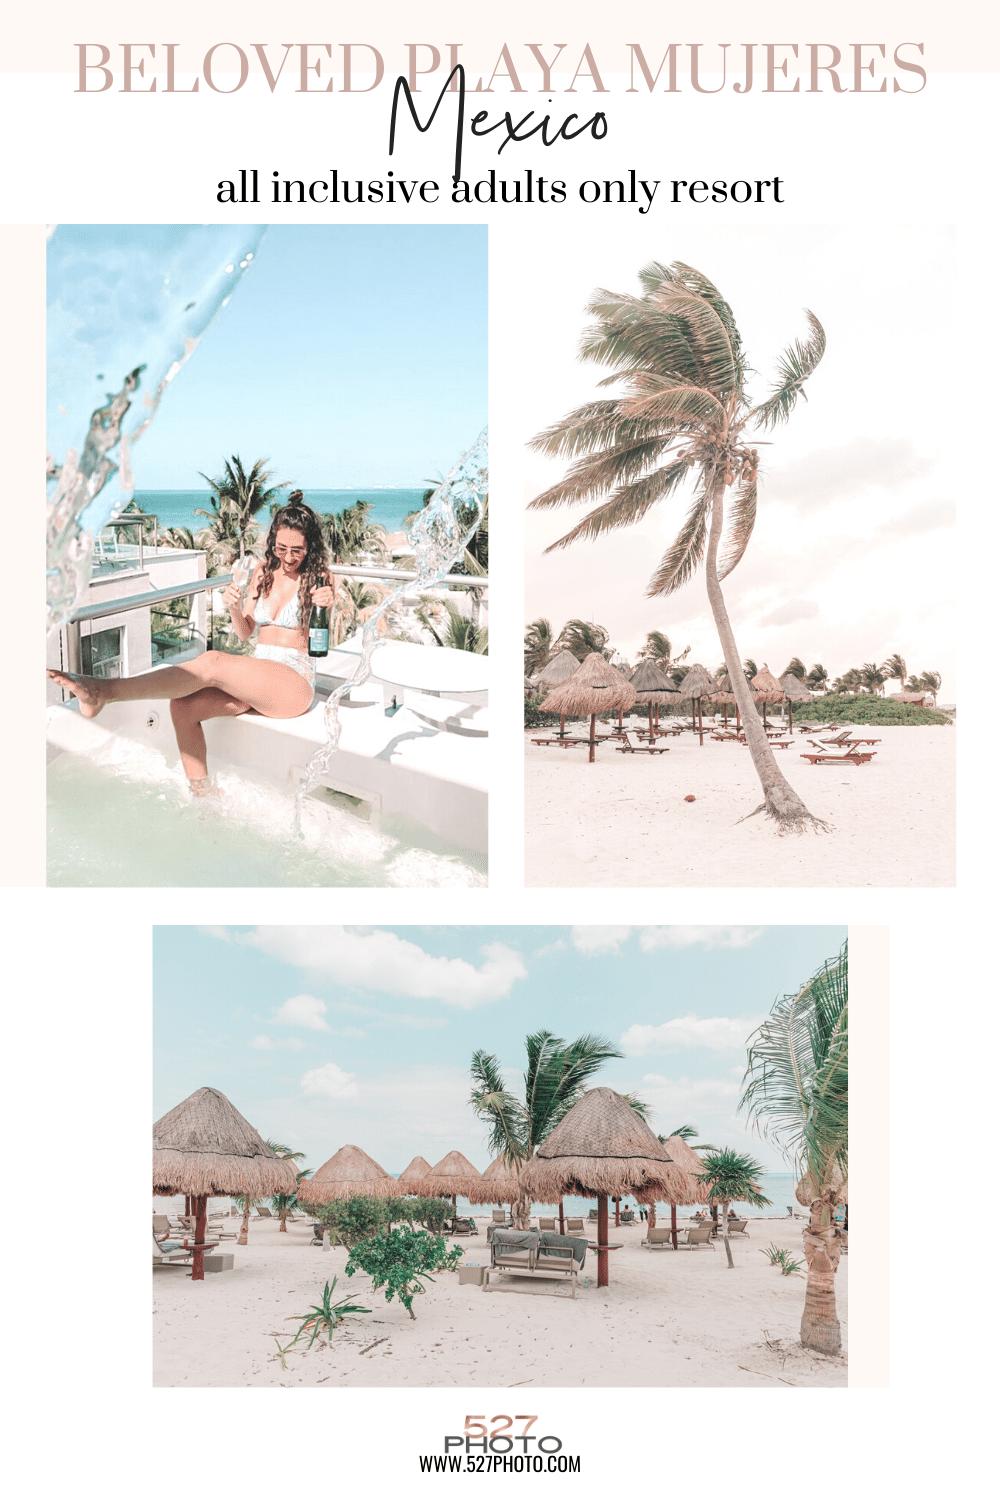 all inclusive beach vacation adults only resort mexico